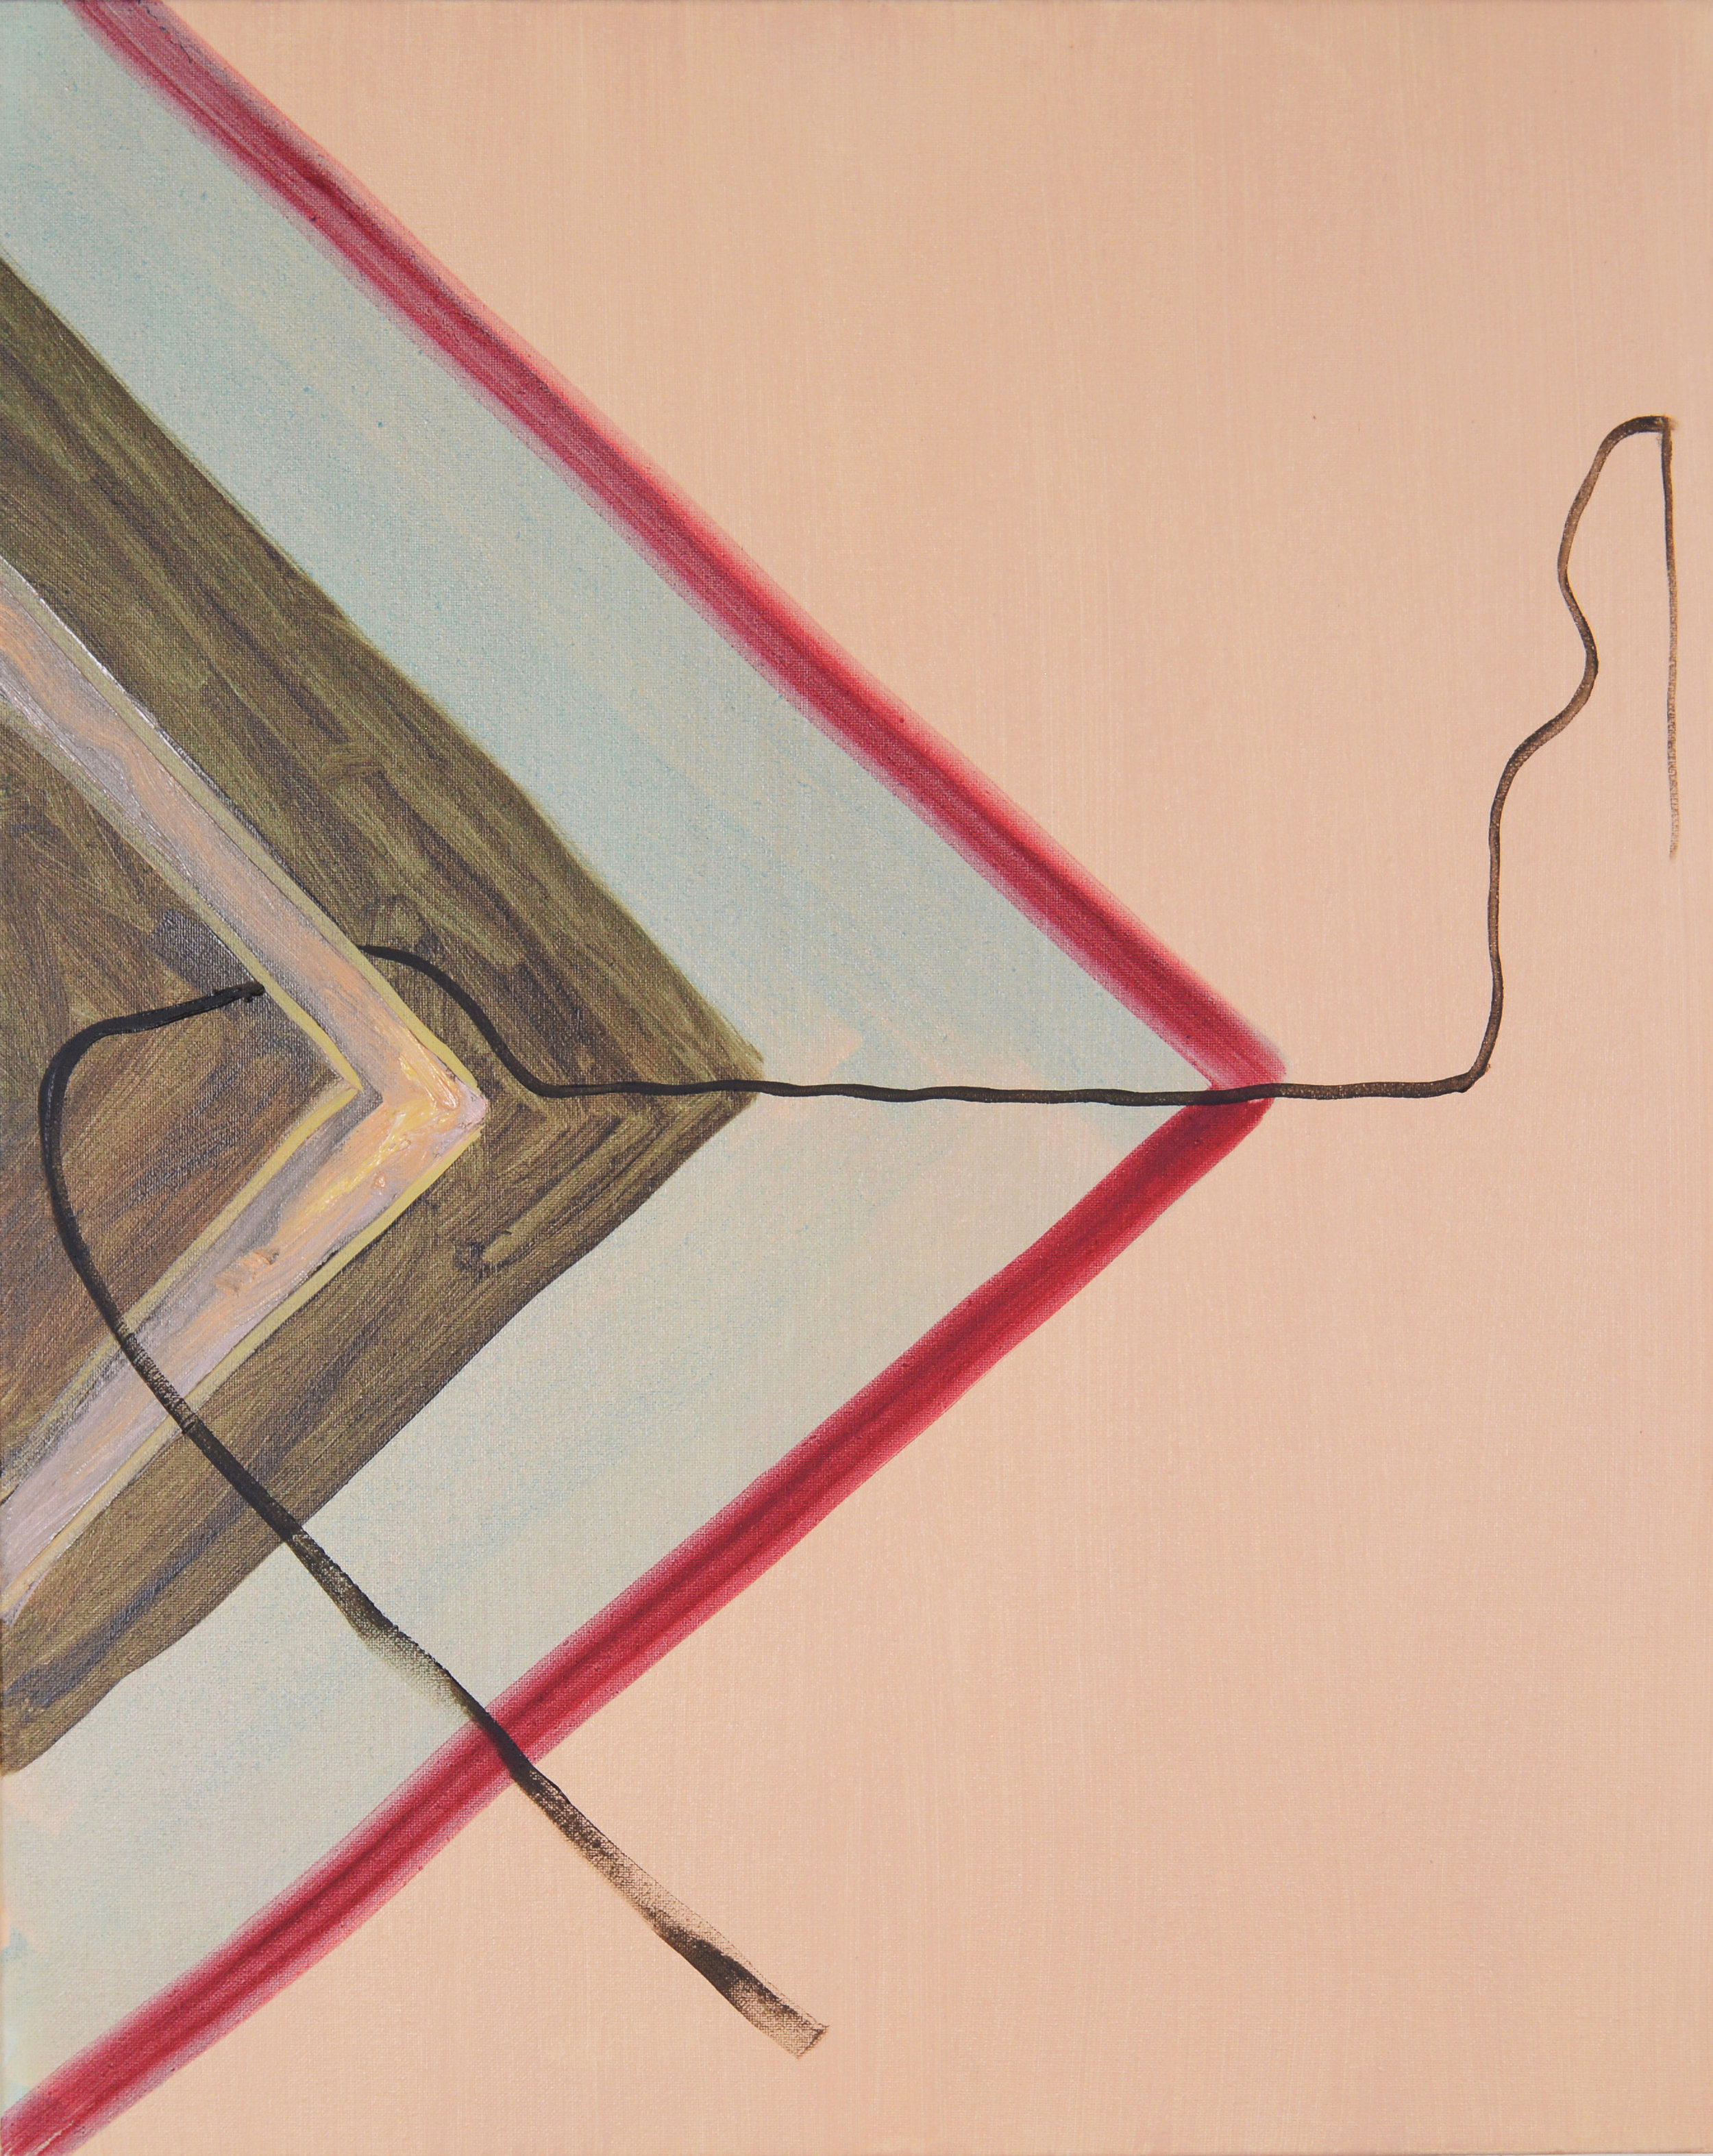 Wired, 2013, Oil on canvas, 50 x 25 cm